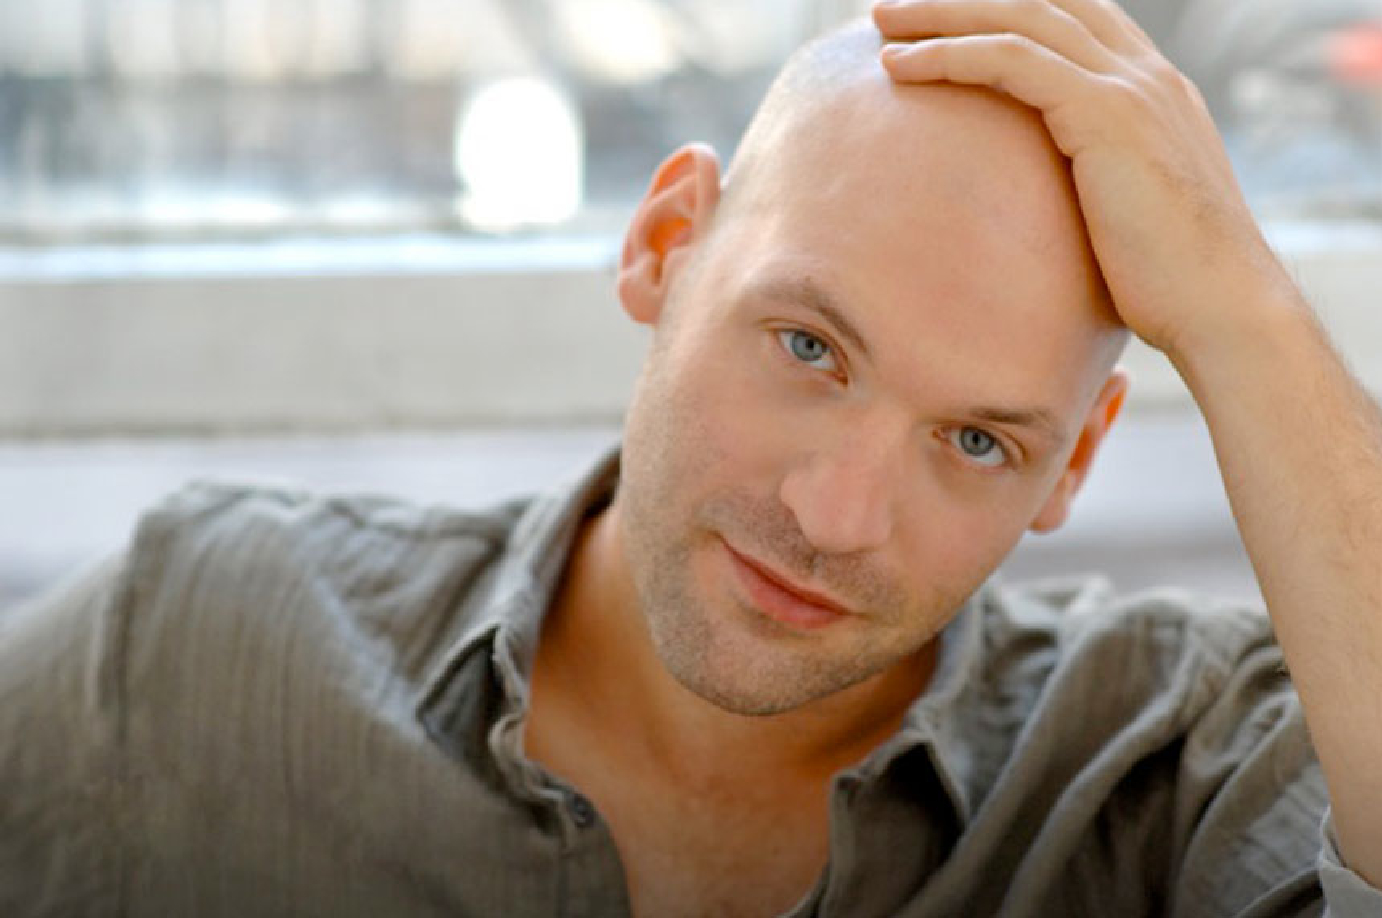 Let S Talk About Hot Bald Guys Slow News Day